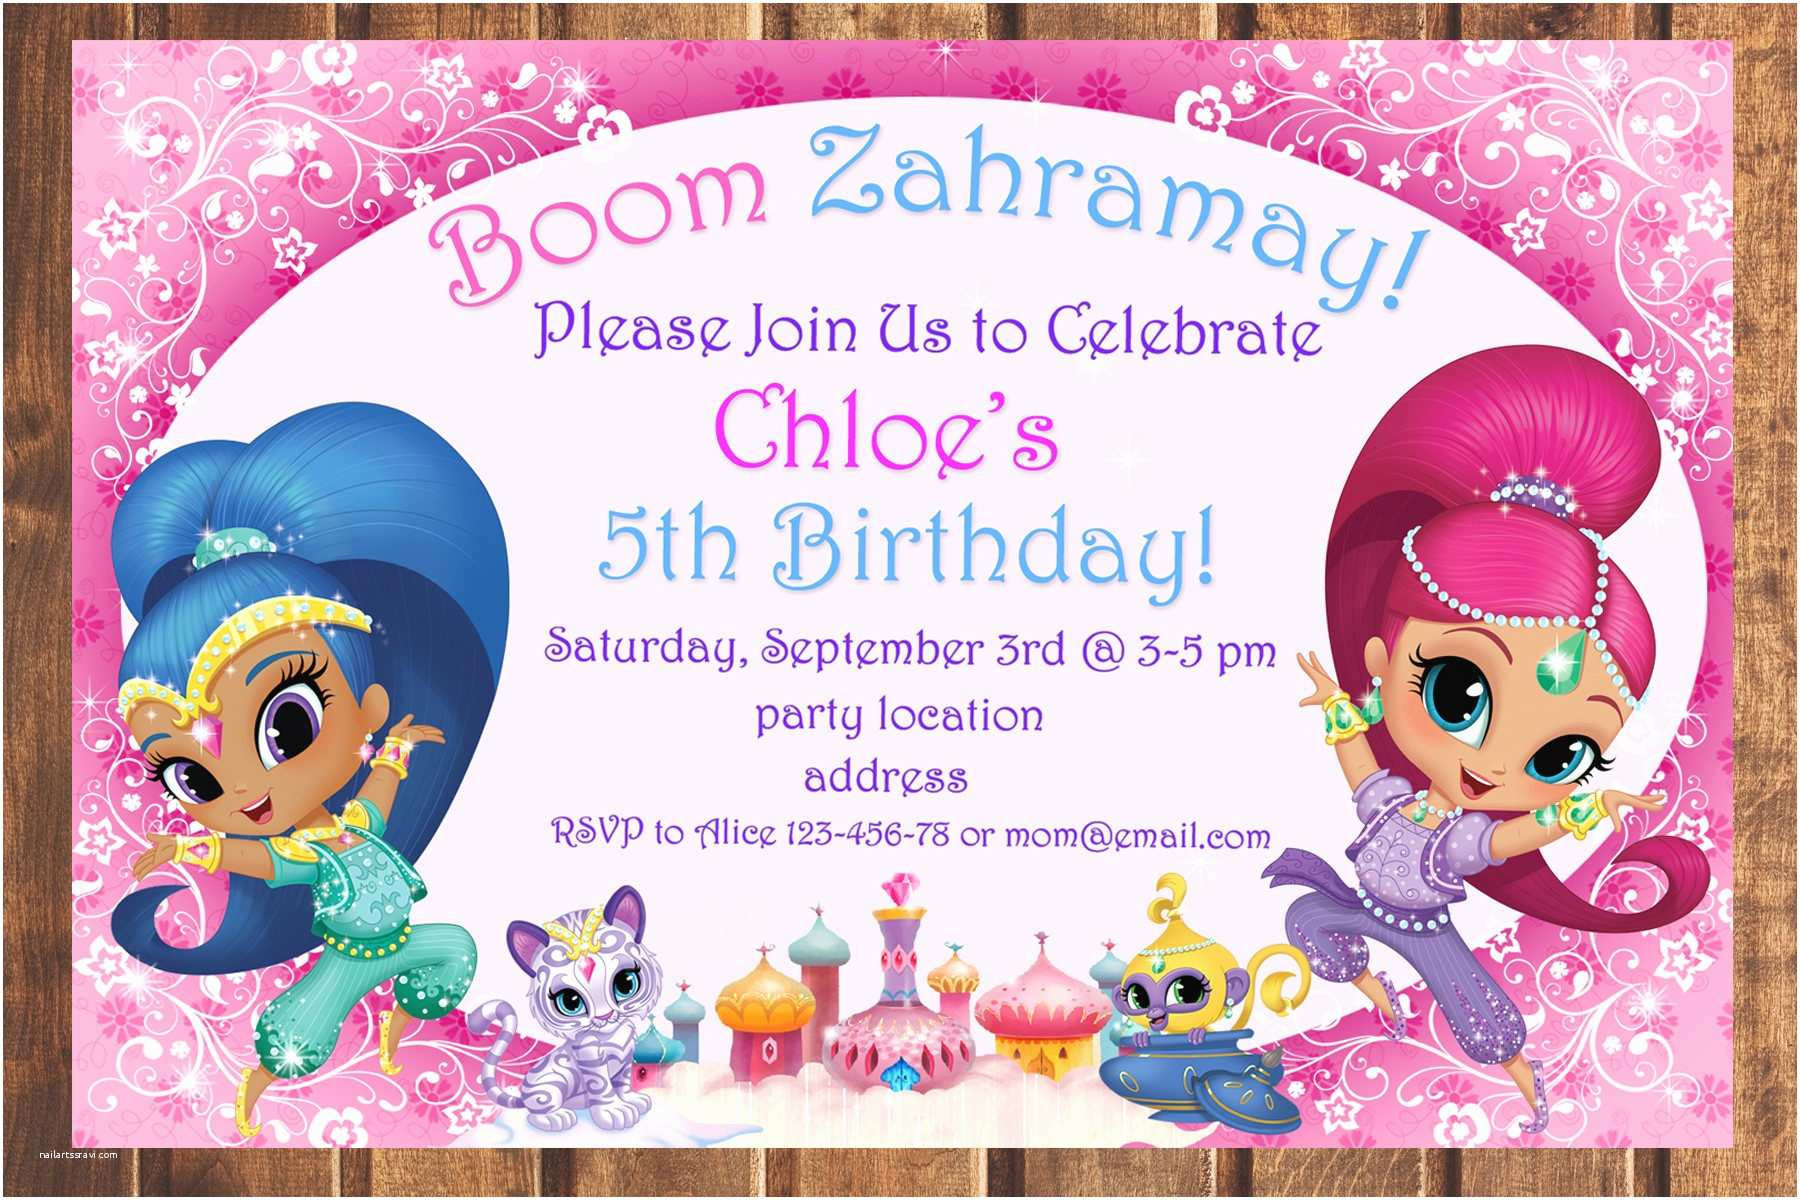 Shimmer and Shine Party Invitations Sale Shimmer and Shine Birthday Invitationshimmer and Shine